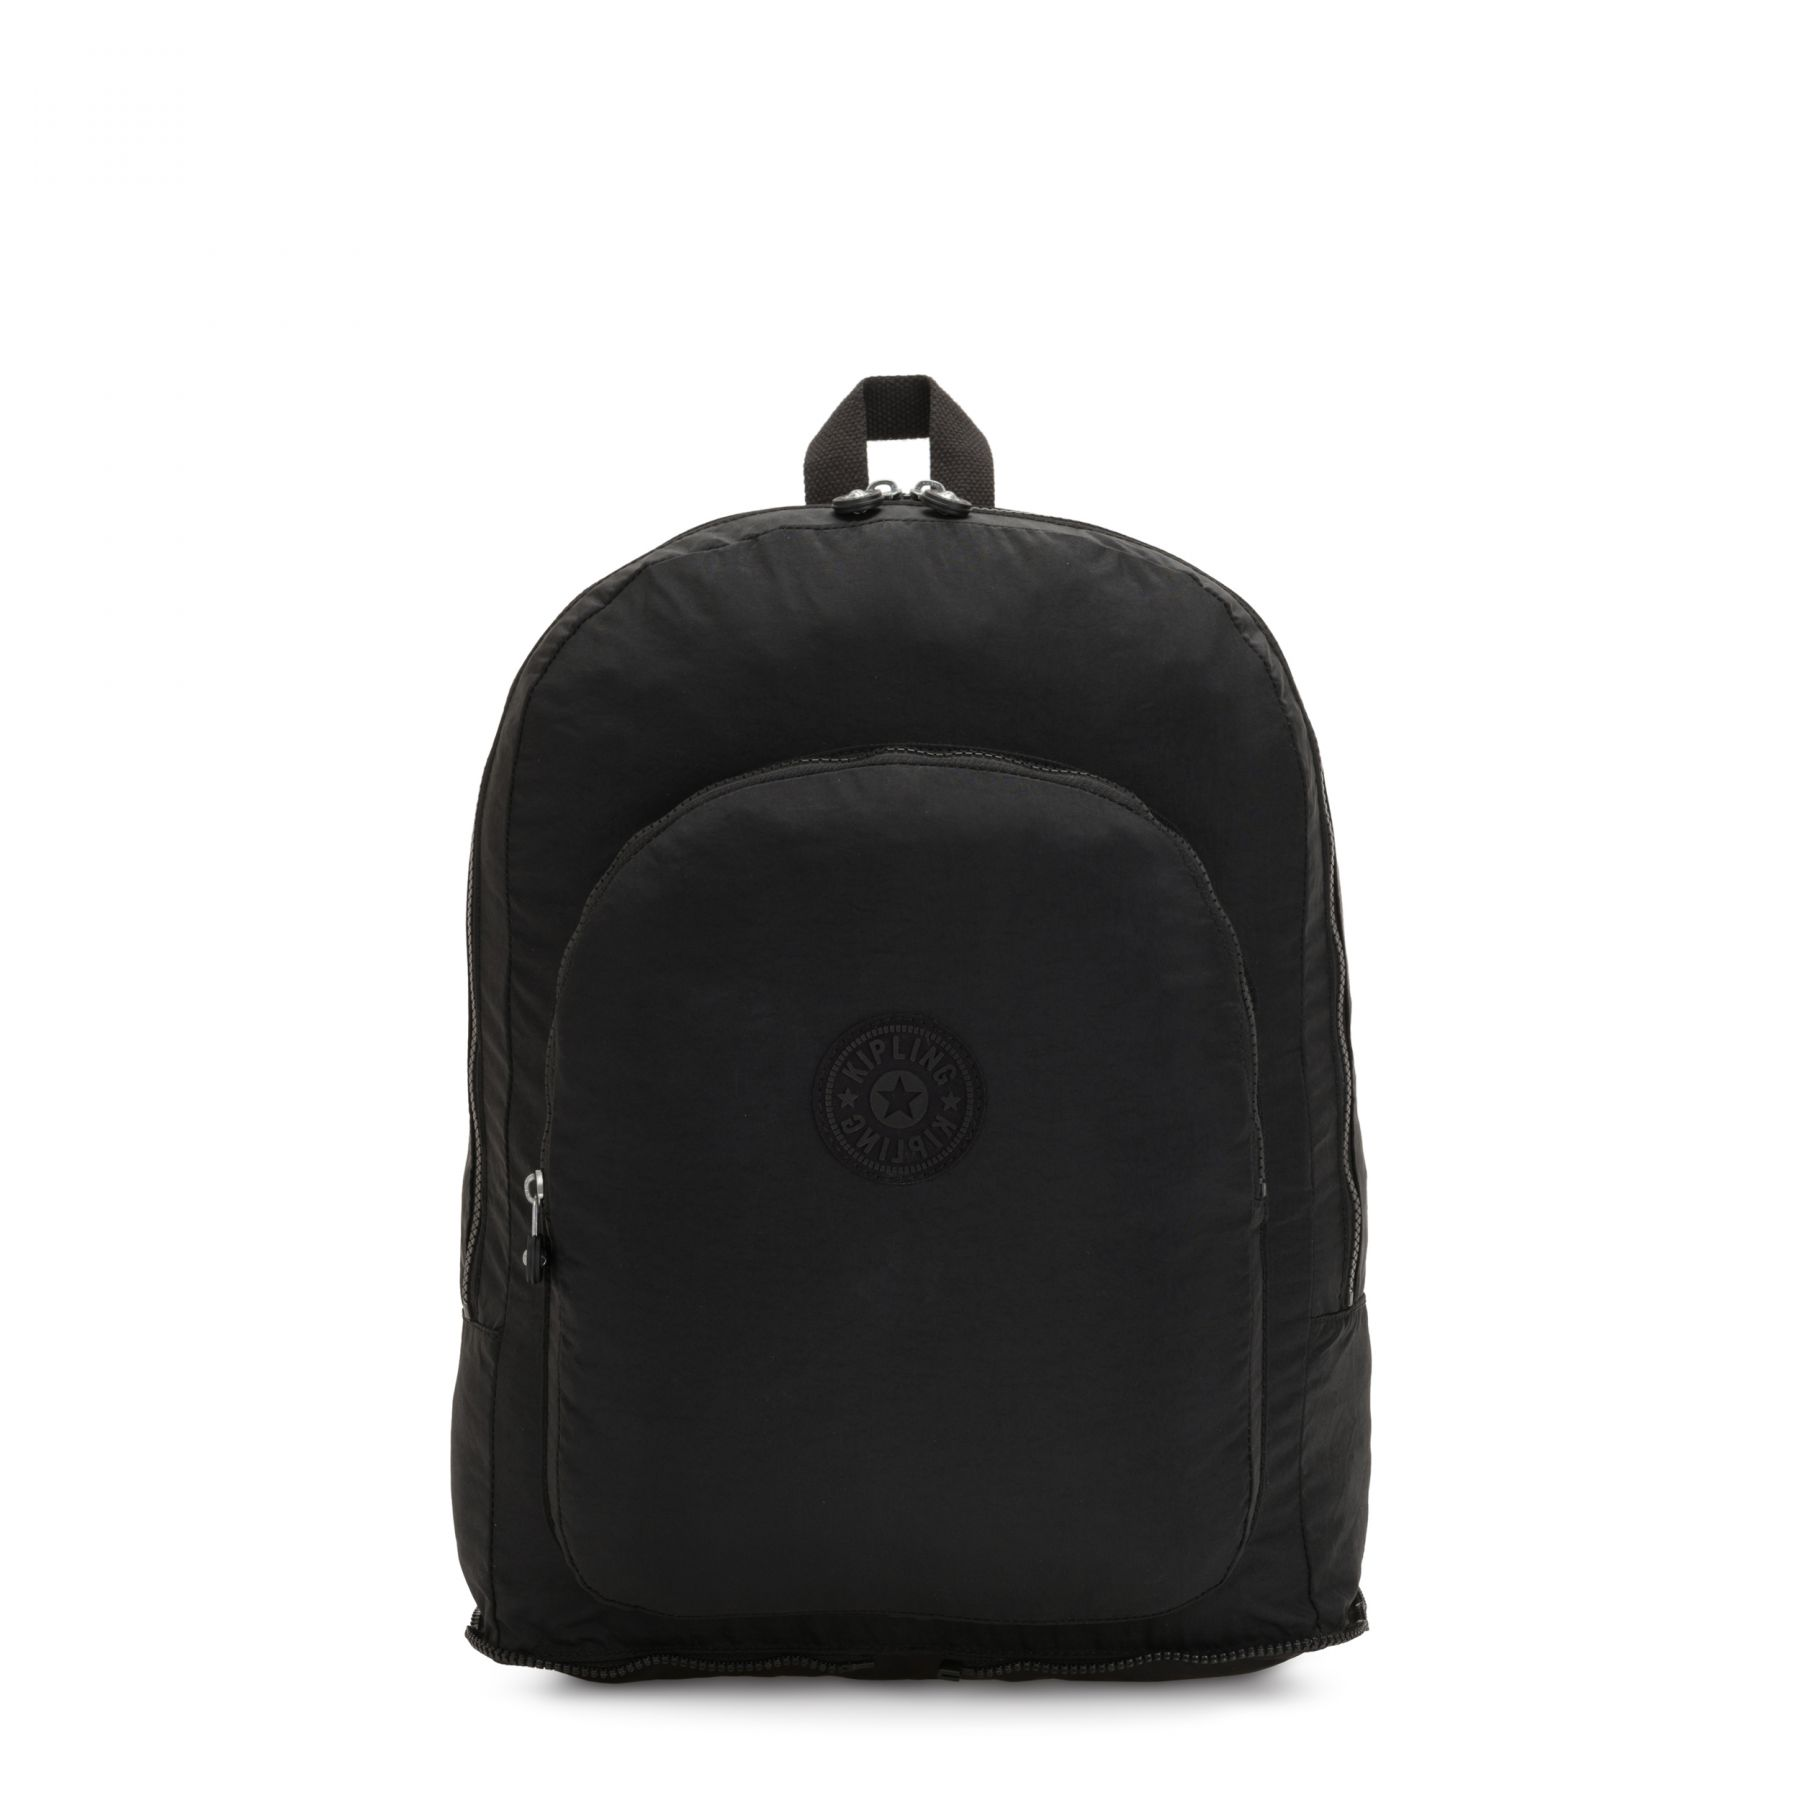 EARNEST Latest Backpacks by Kipling - Front view